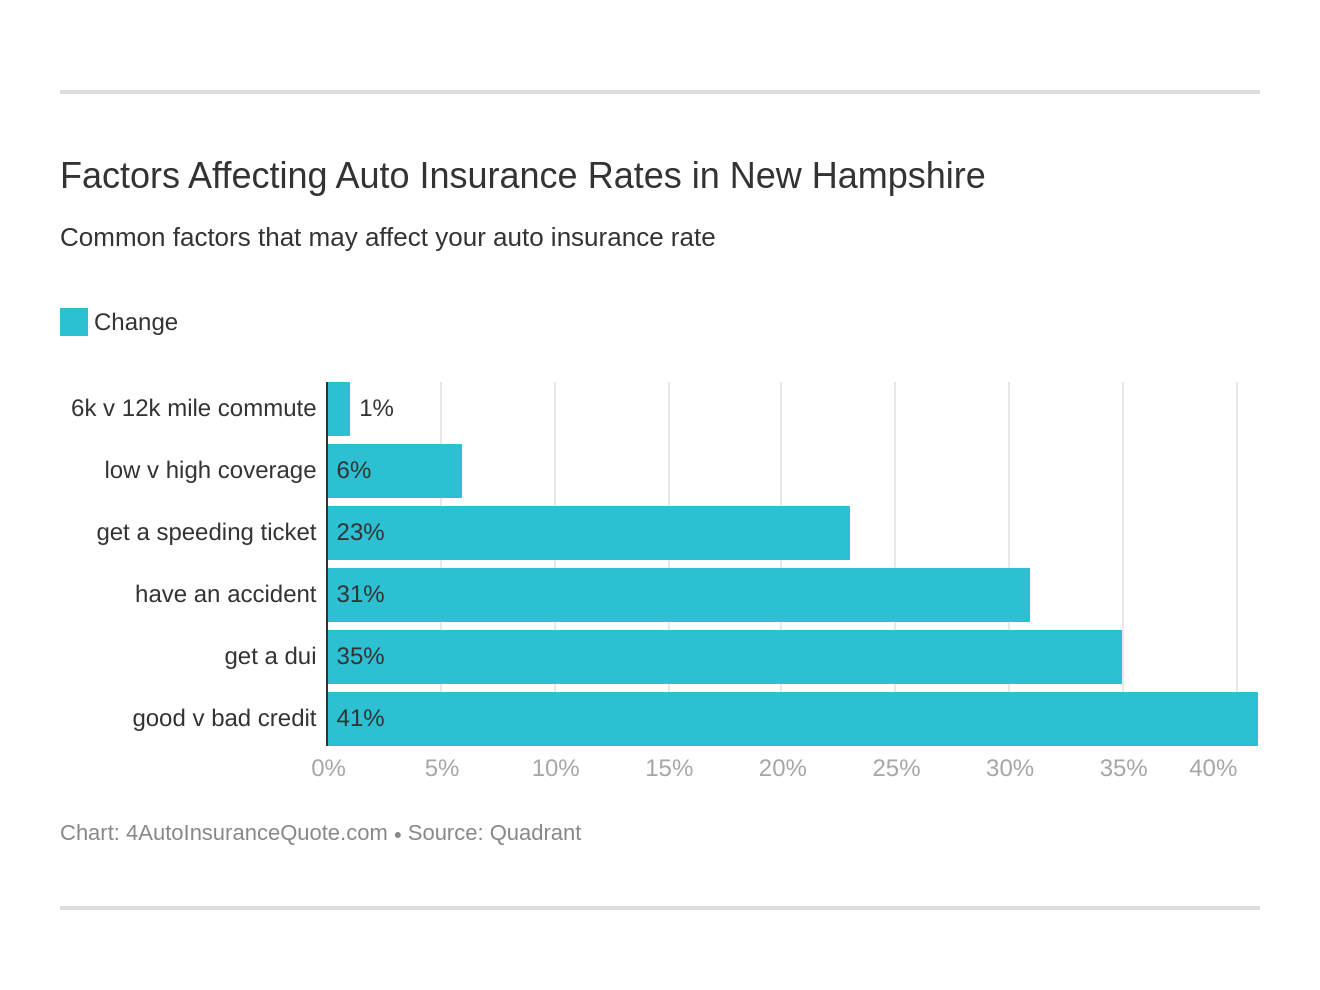 Factors Affecting Auto Insurance Rates in New Hampshire